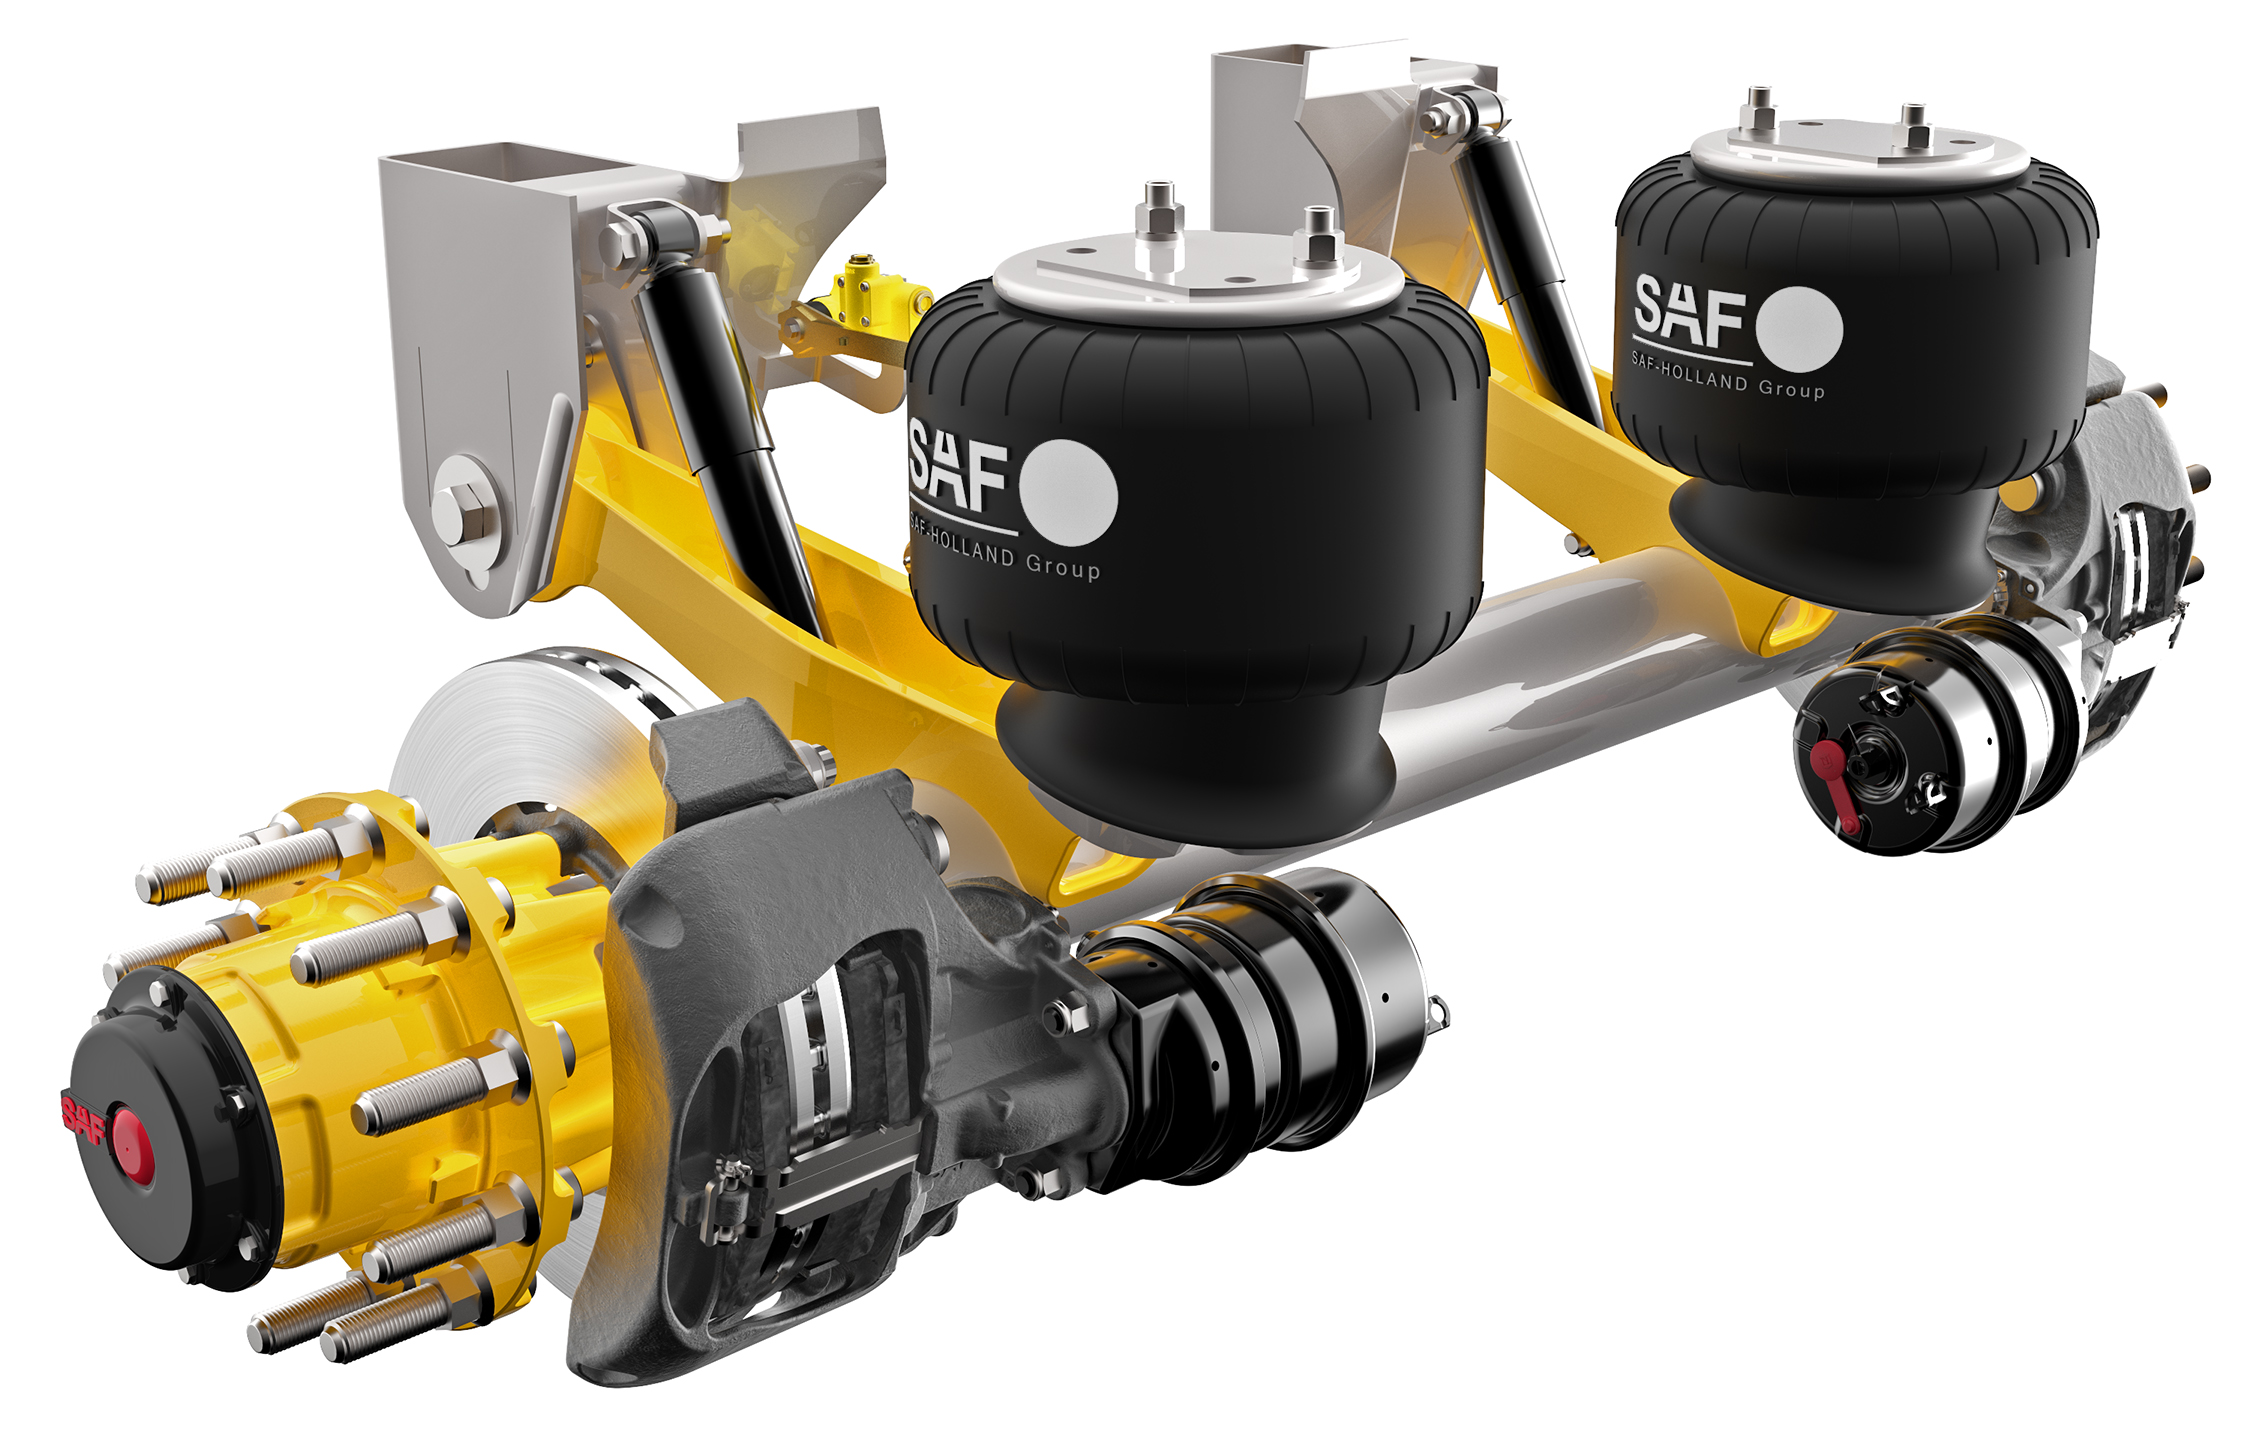 Fifth Wheel Air Ride Suspension : Saf holland introduces new suspension shunt truck fifth